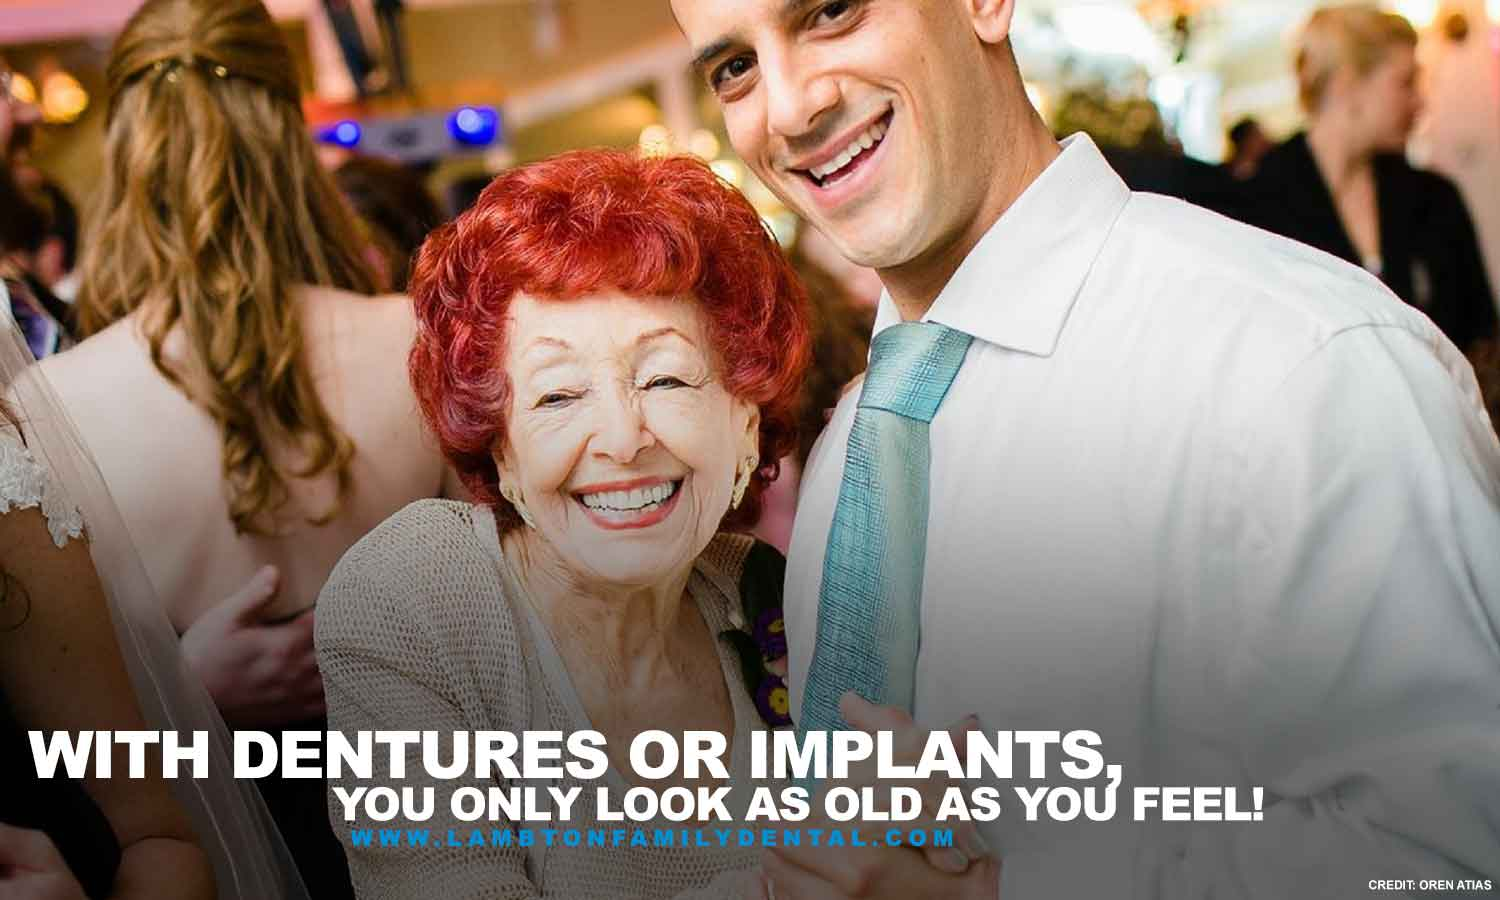 With dentures or implants